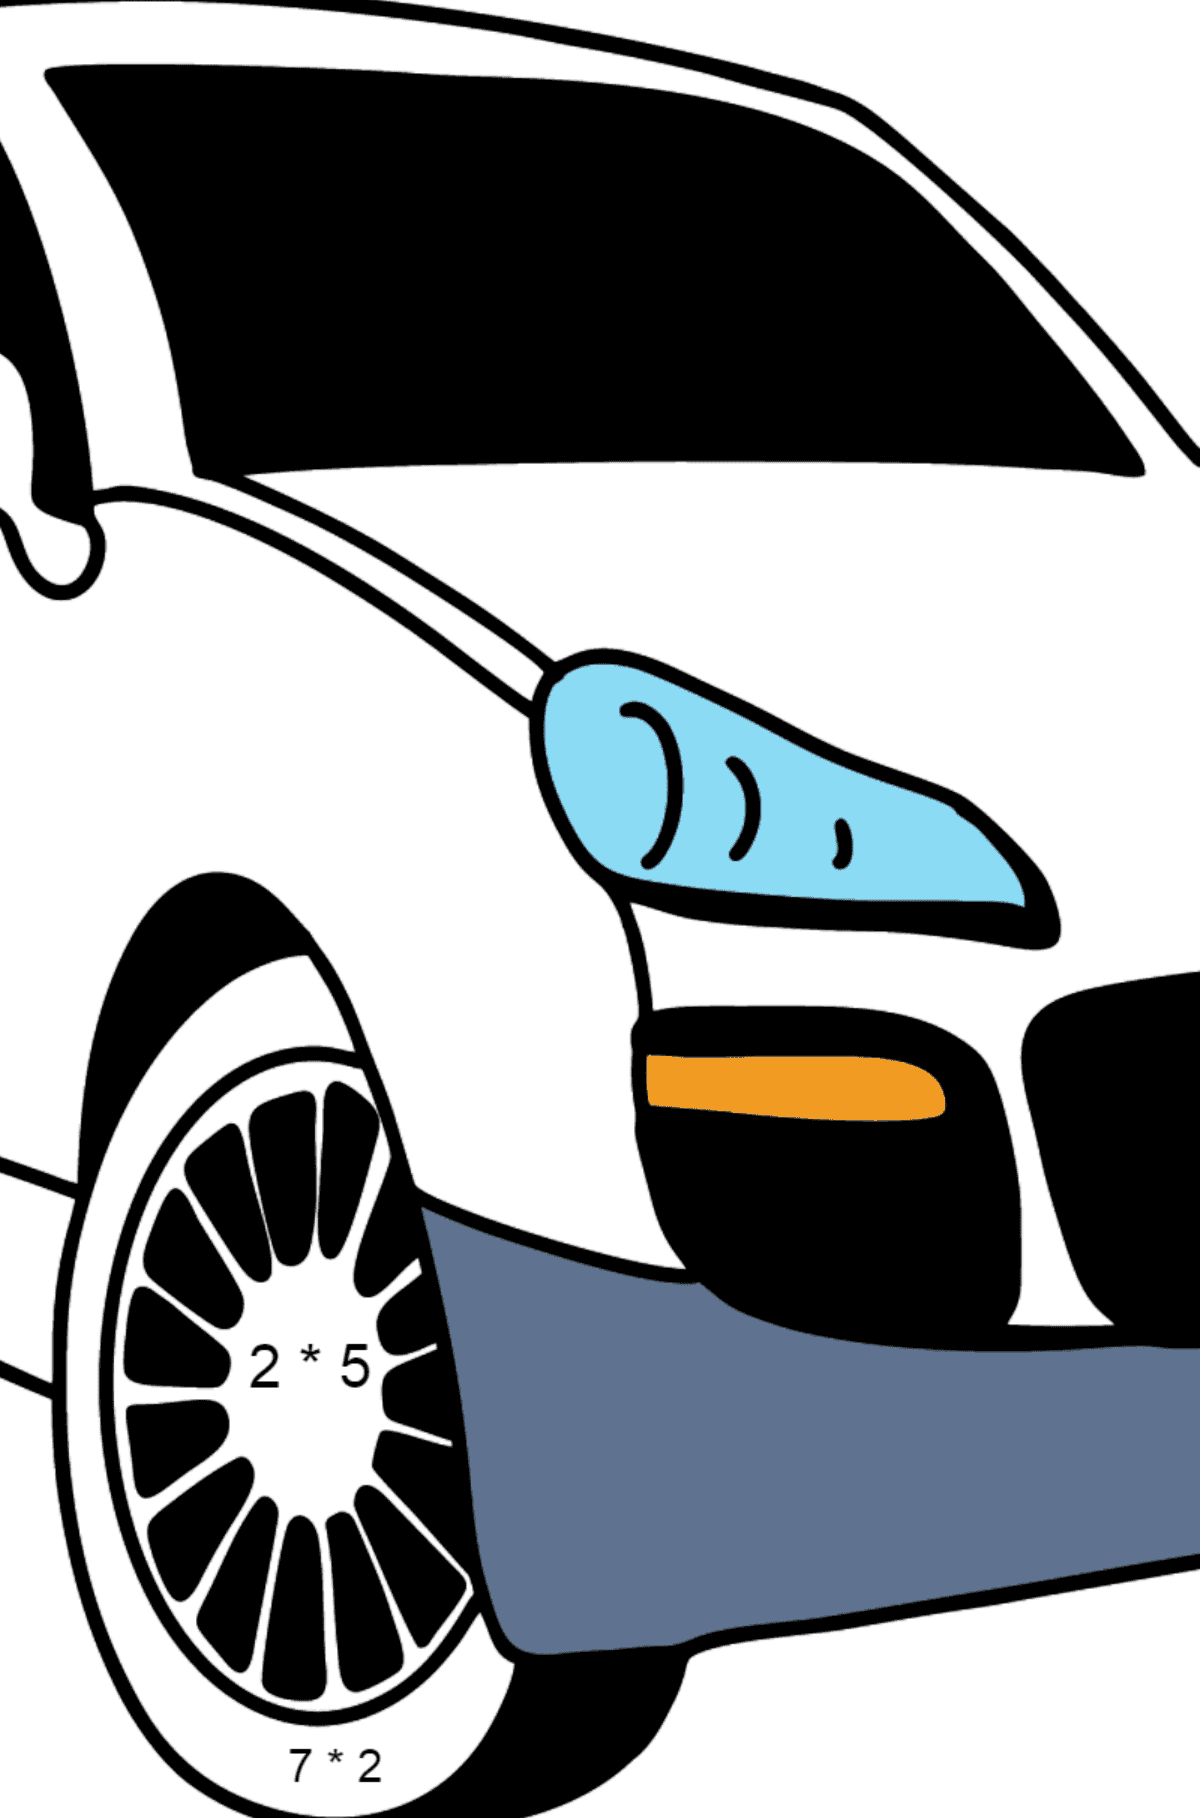 Porsche Cayenne Crossover coloring page - Math Coloring - Multiplication for Kids